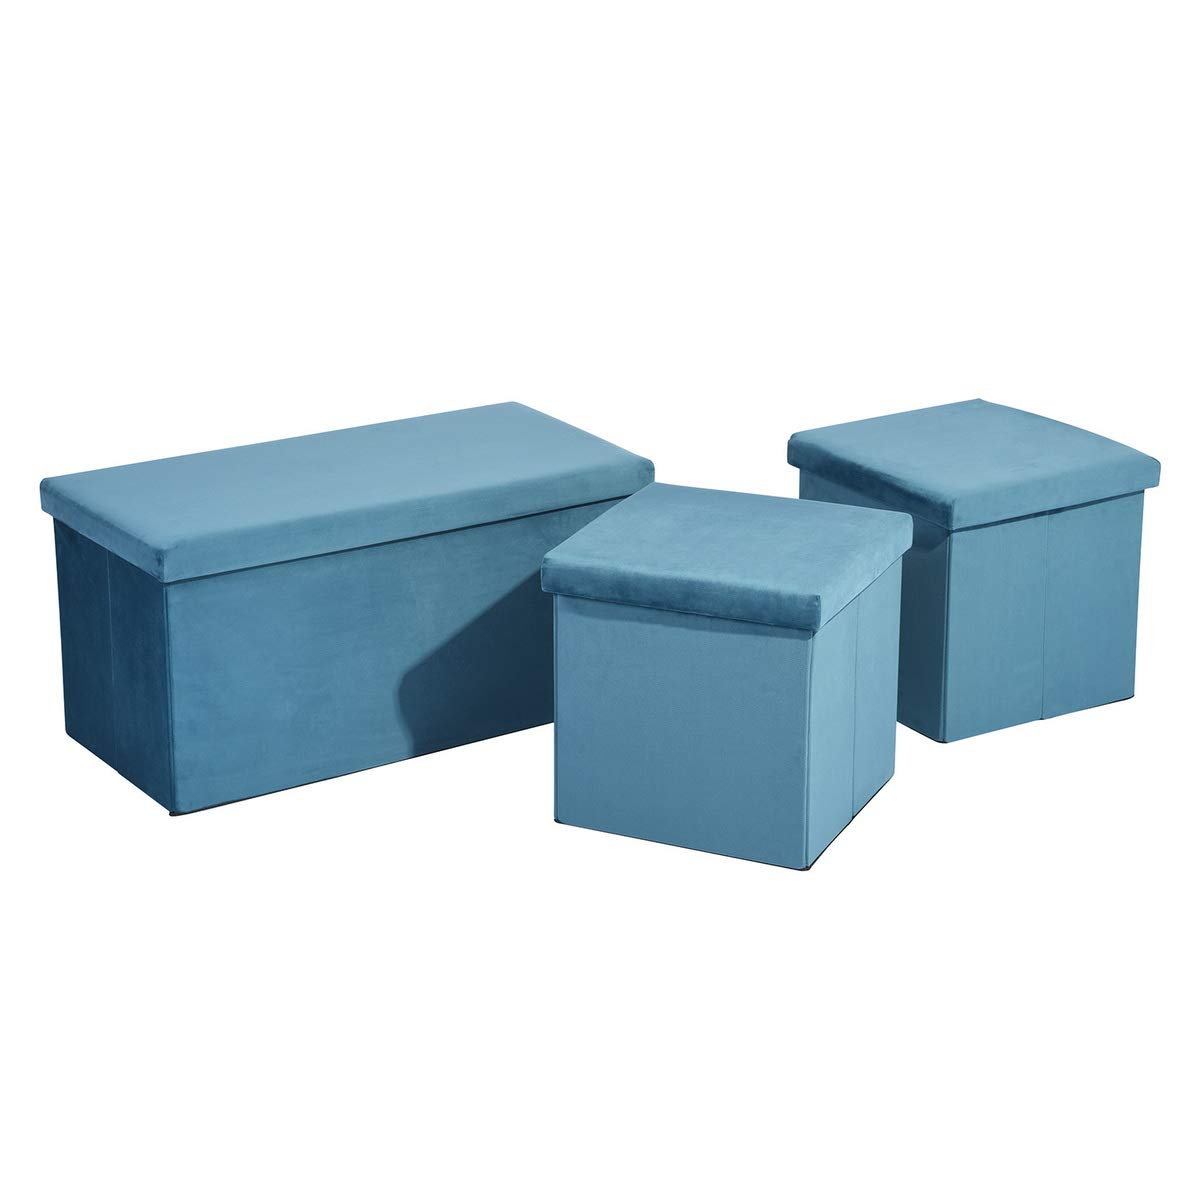 FurnitureR Set of 3 Multifunction Storage Ottoman Cube Fabric Cover Box 2 Cube Box 1 Rectangle Foot Rest Stool